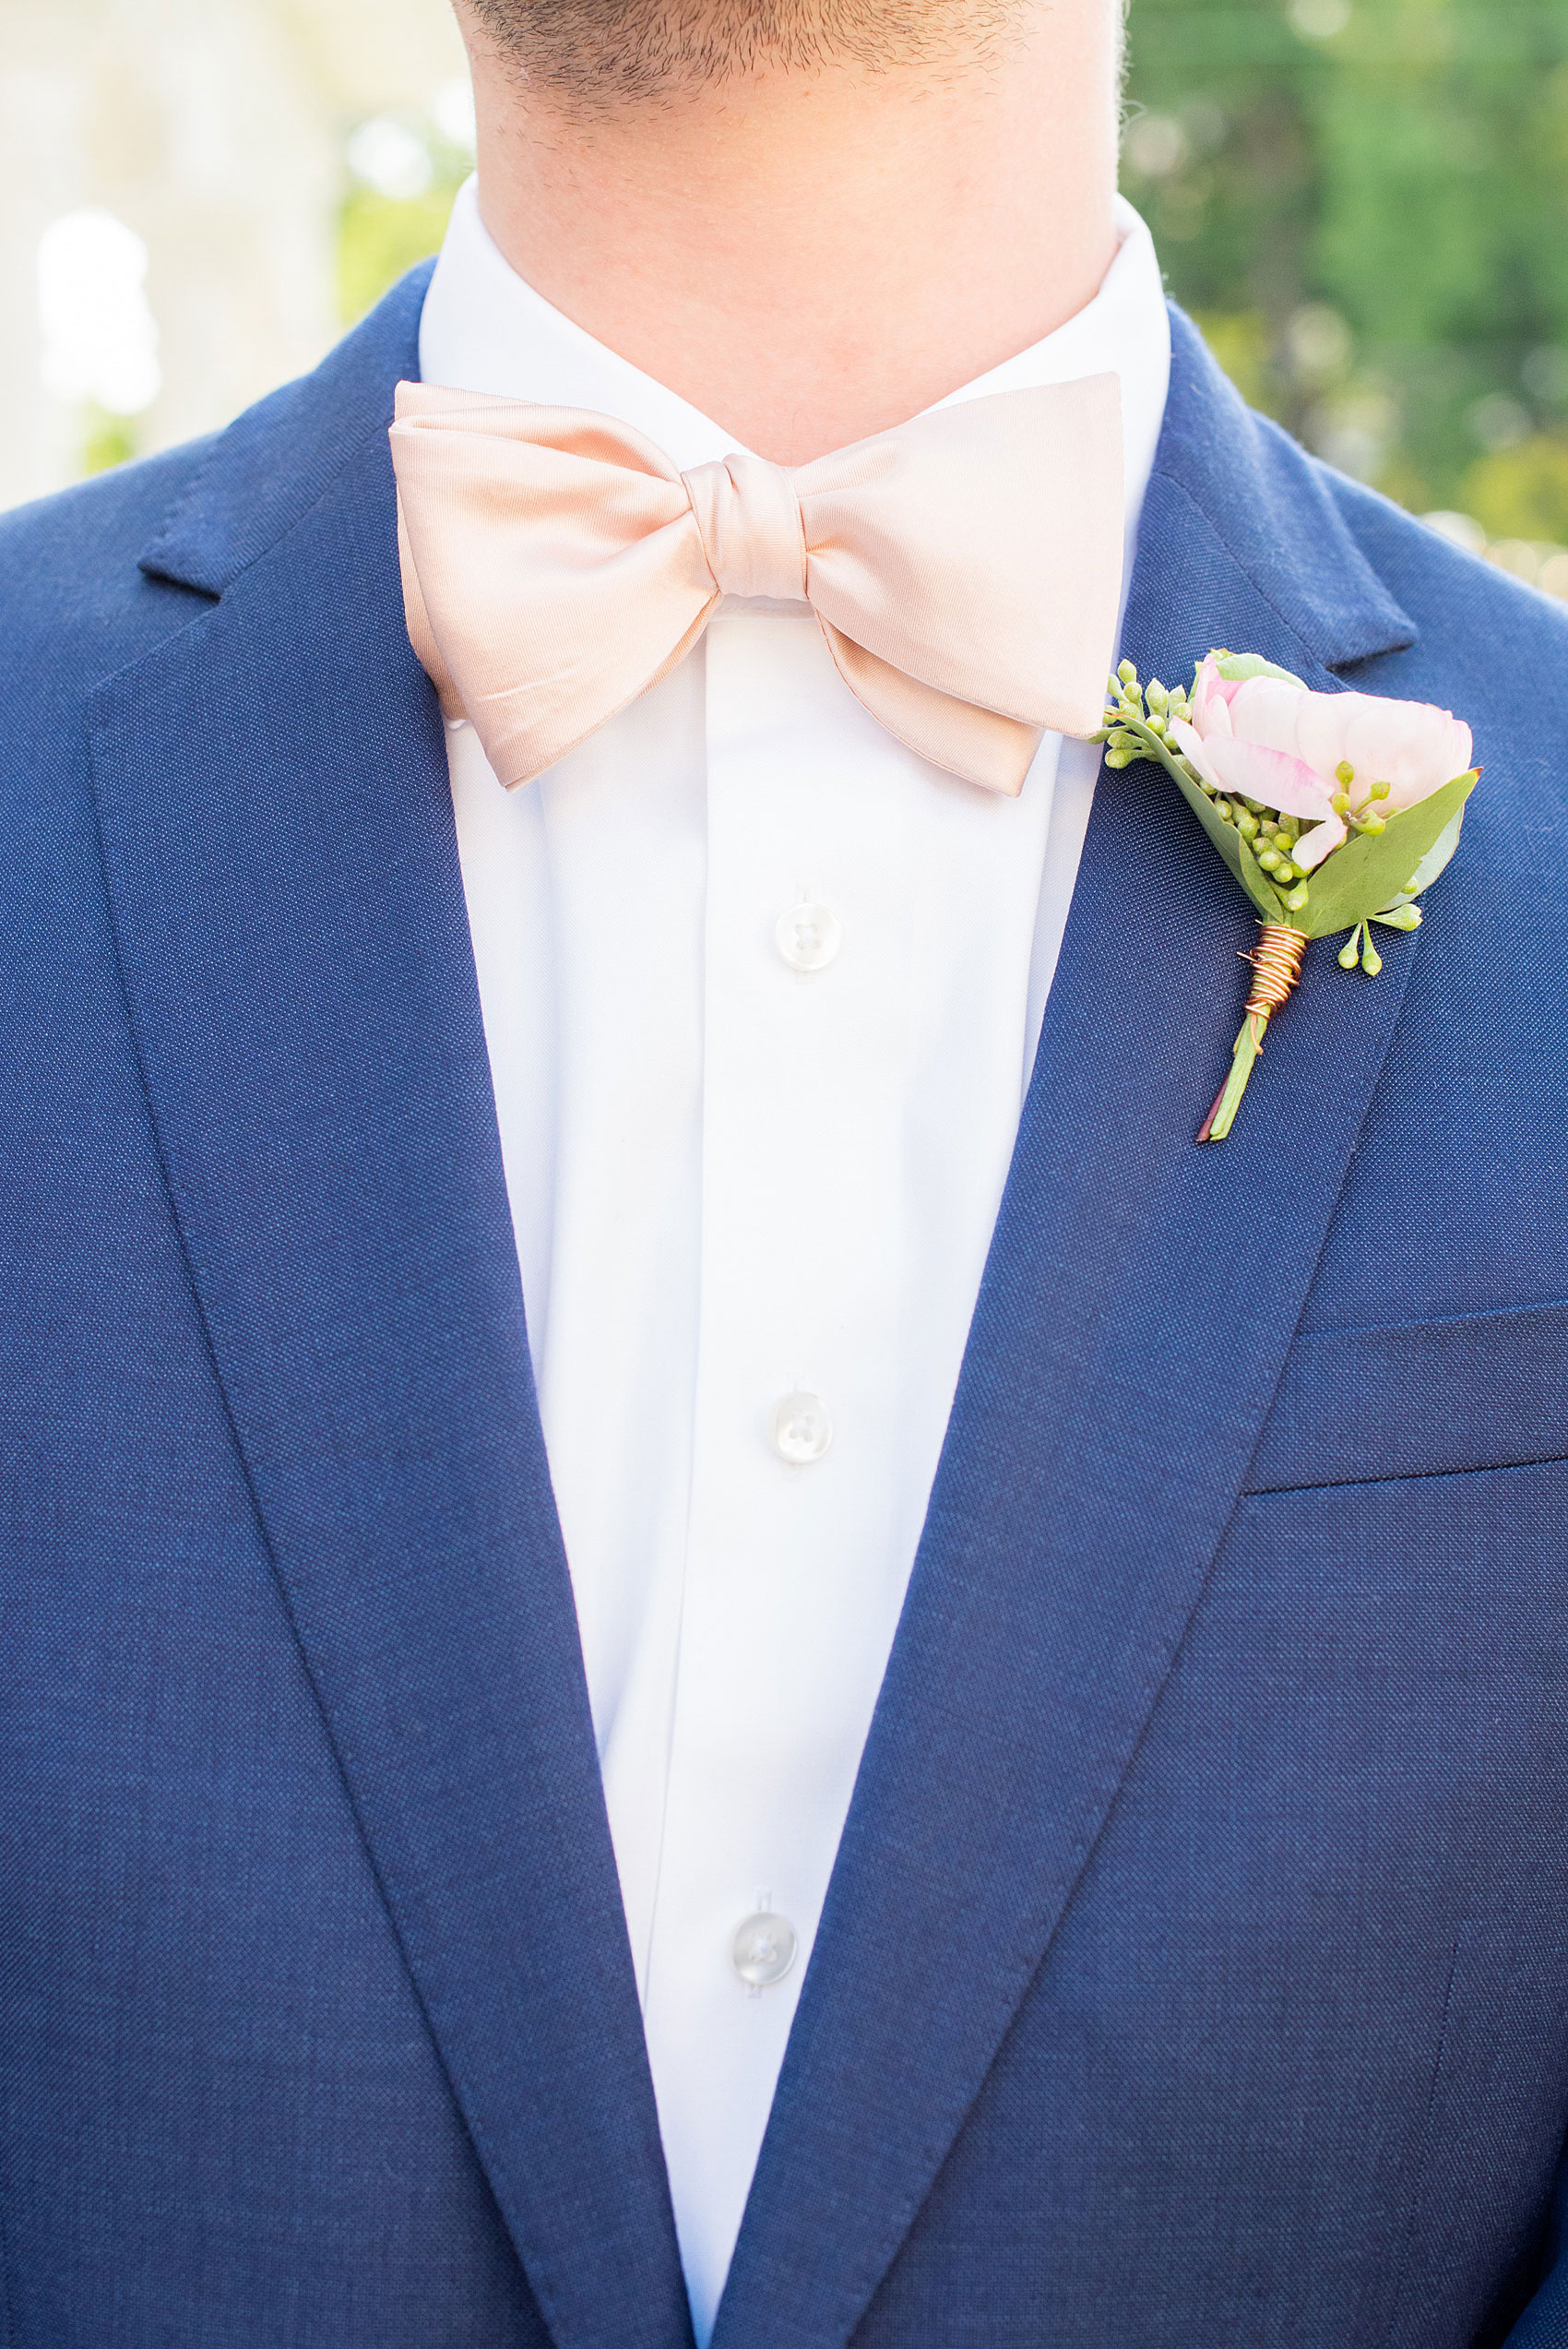 Mikkel Paige Photography pictures from a wedding at Merrimon-Wynne House in Raleigh, NC. Detail photo of the groomsman's blue linen suit, pink boutonniere tied with copper wire and pink bow tie.